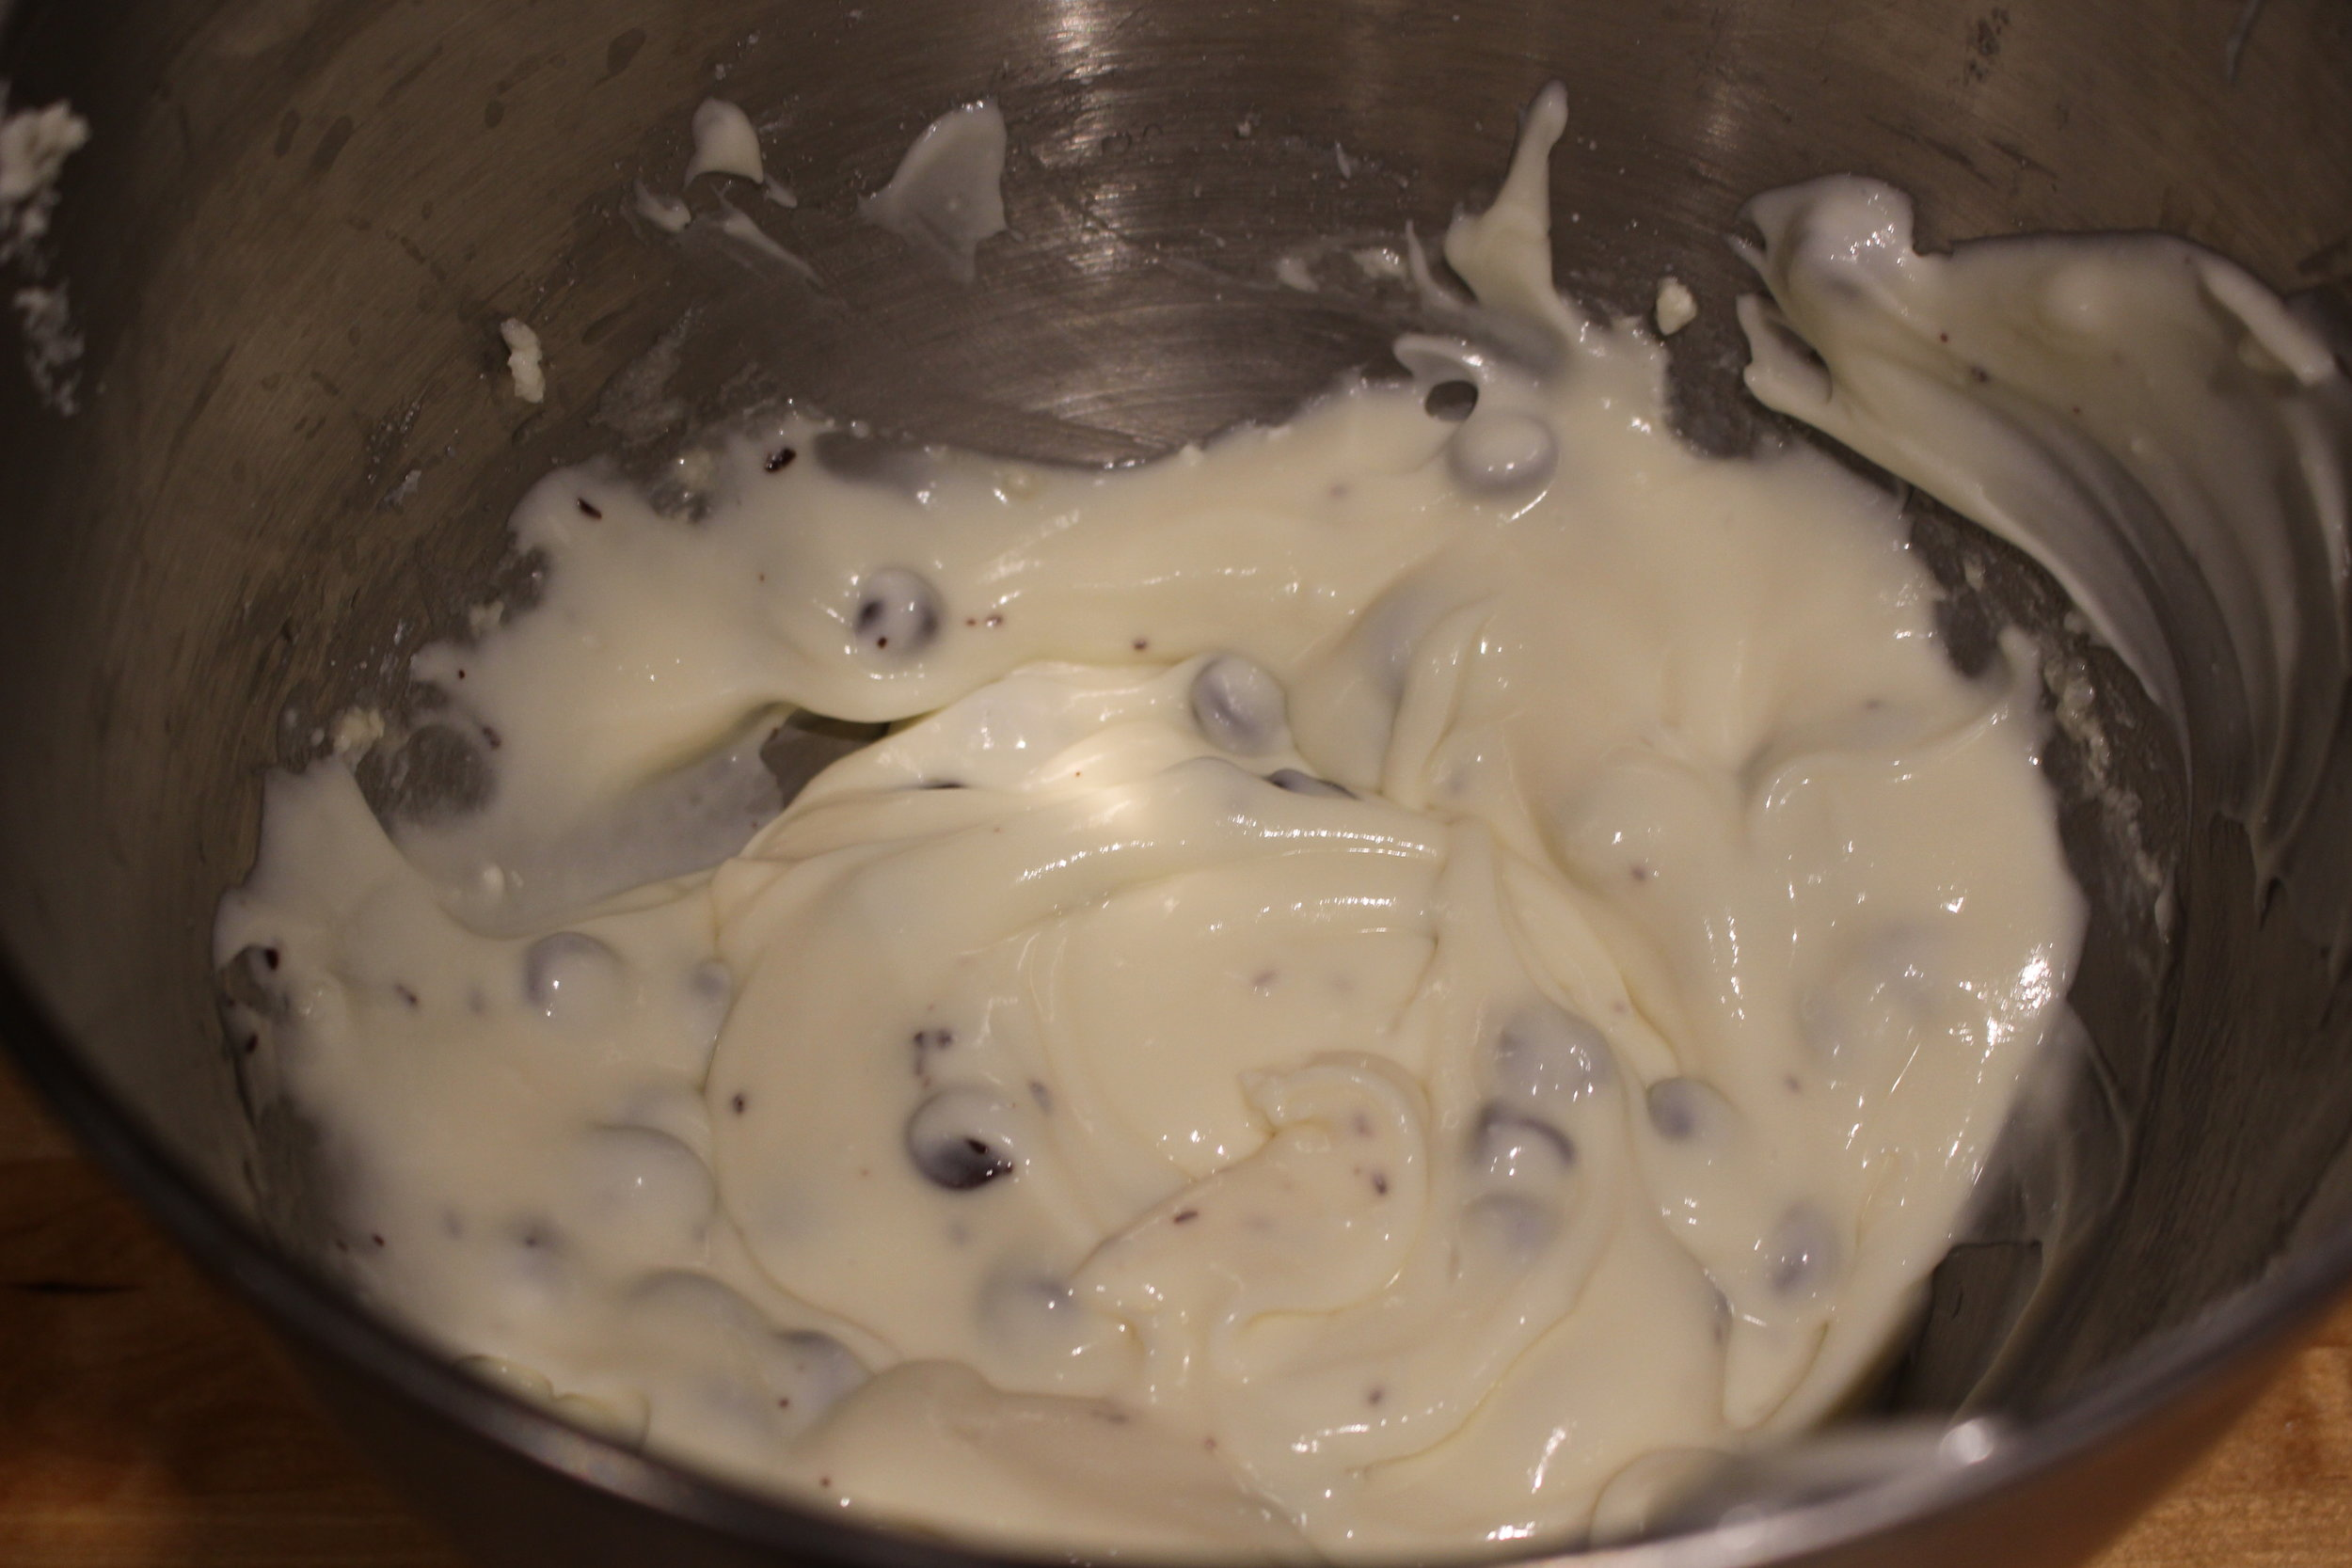 Ready to put in a piping bag for the cannolis